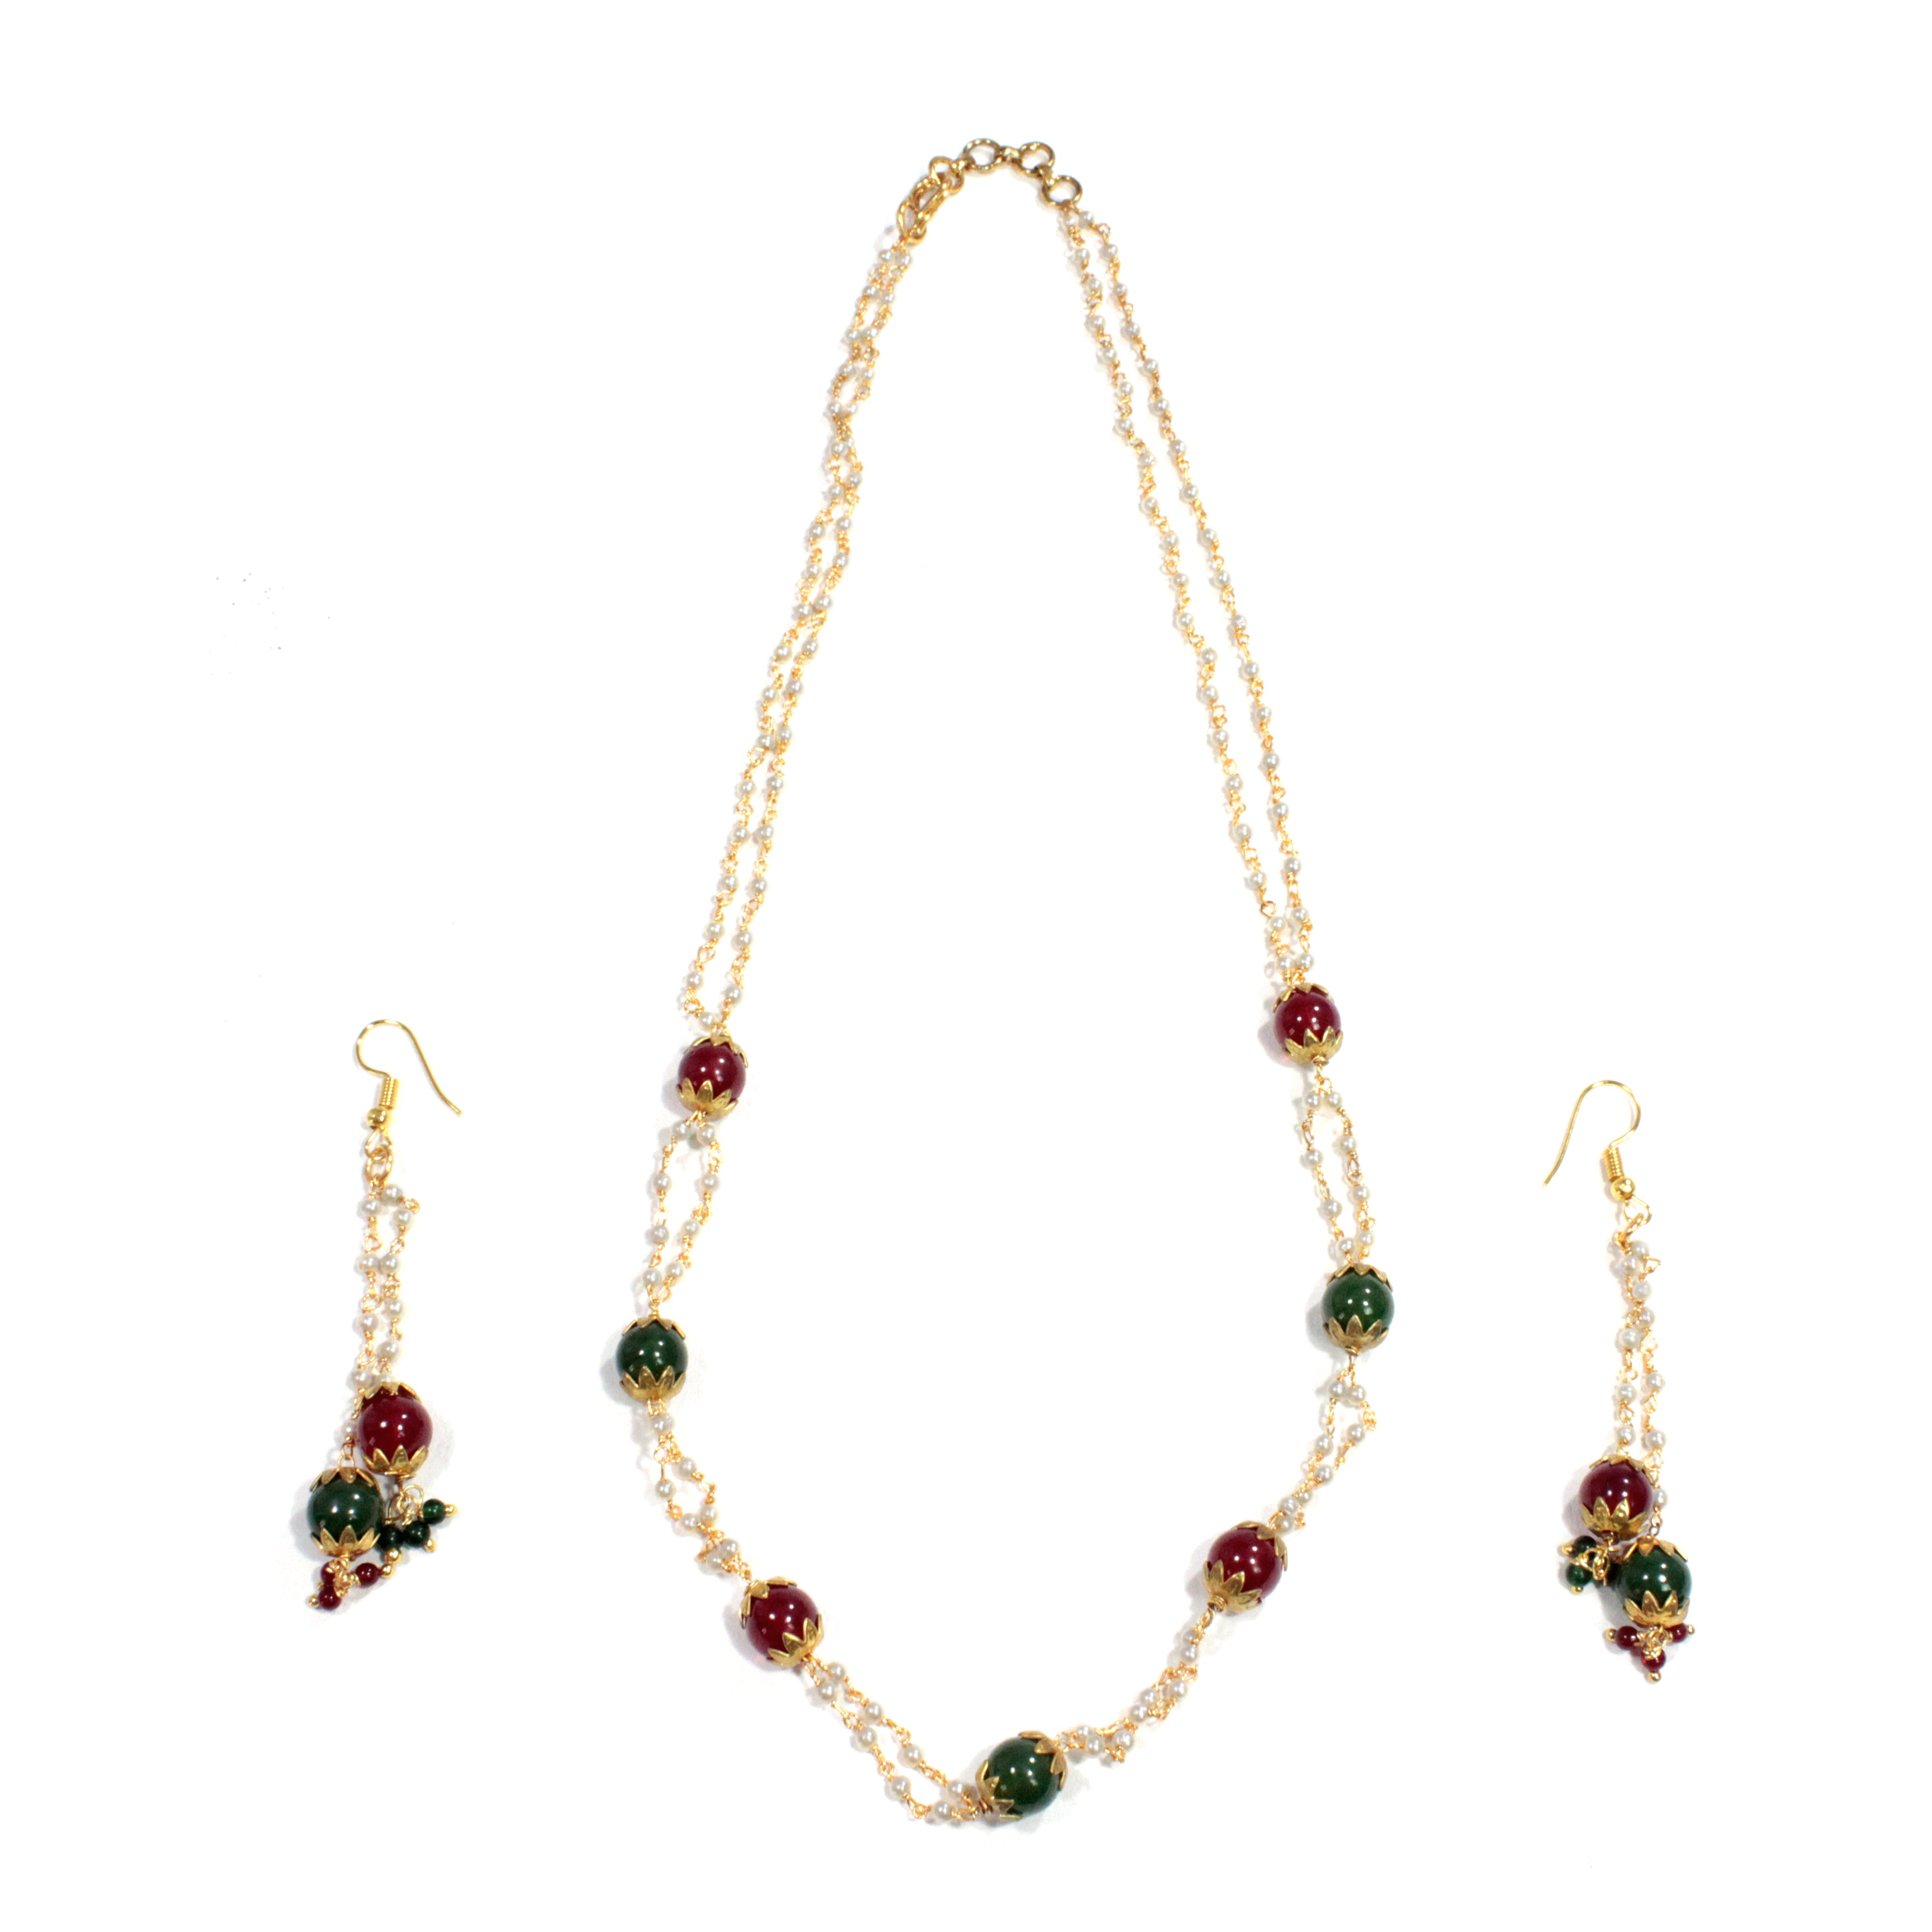 2 Layered Pearl With Artificial Beads Necklace Set